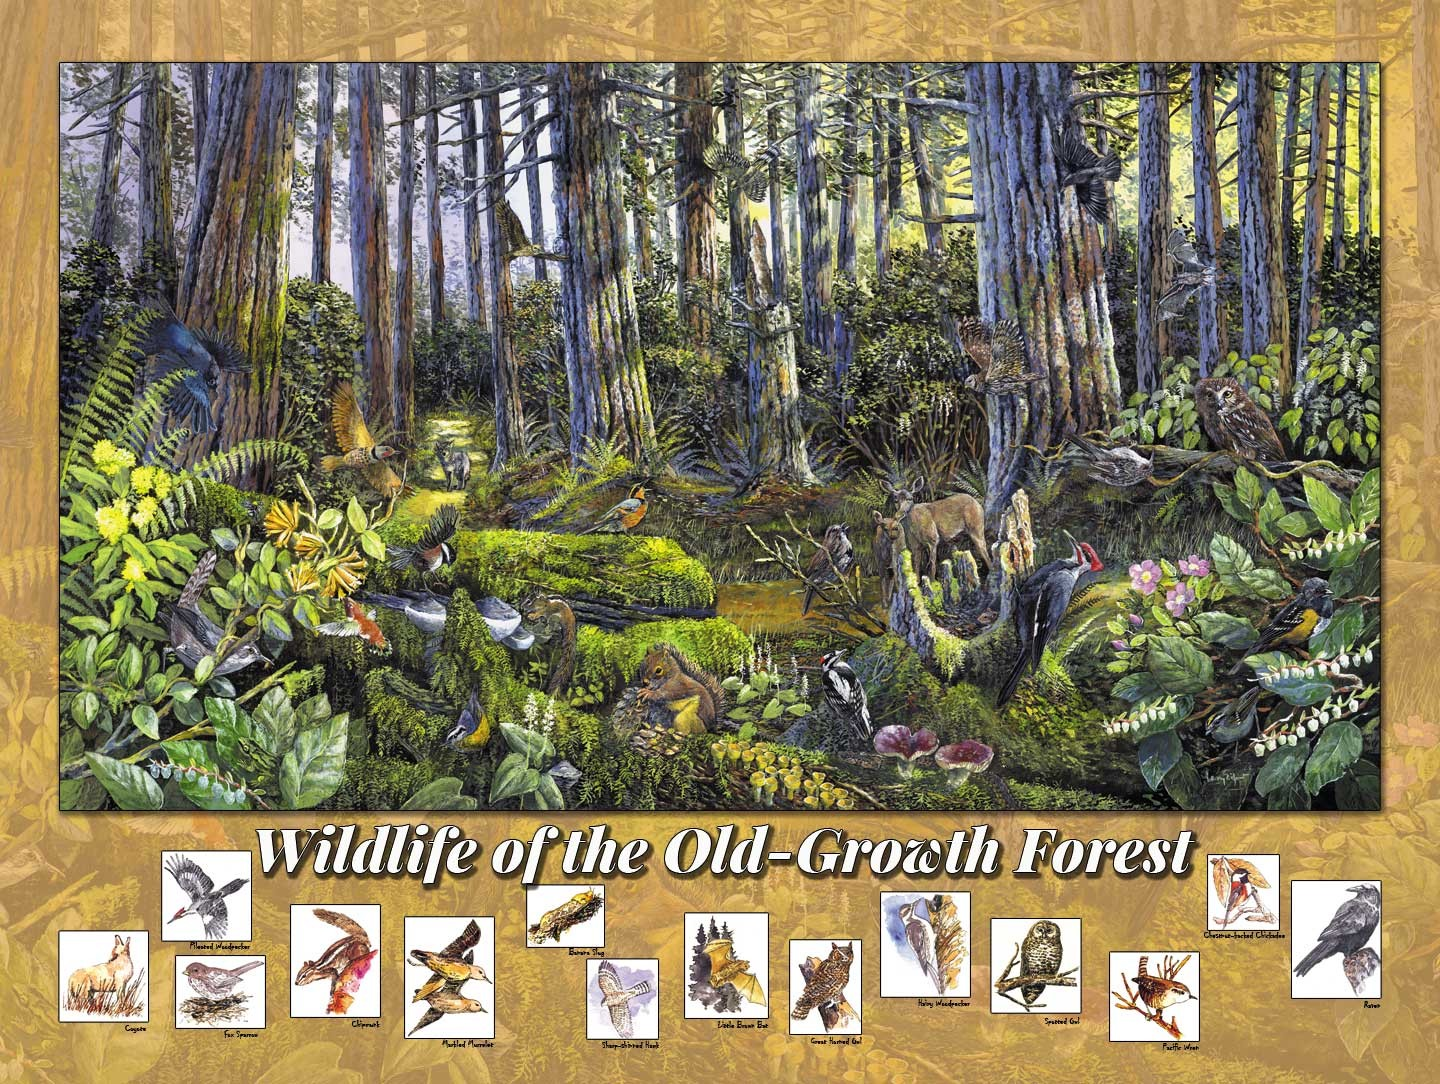 Wildlife of Old growth Forests